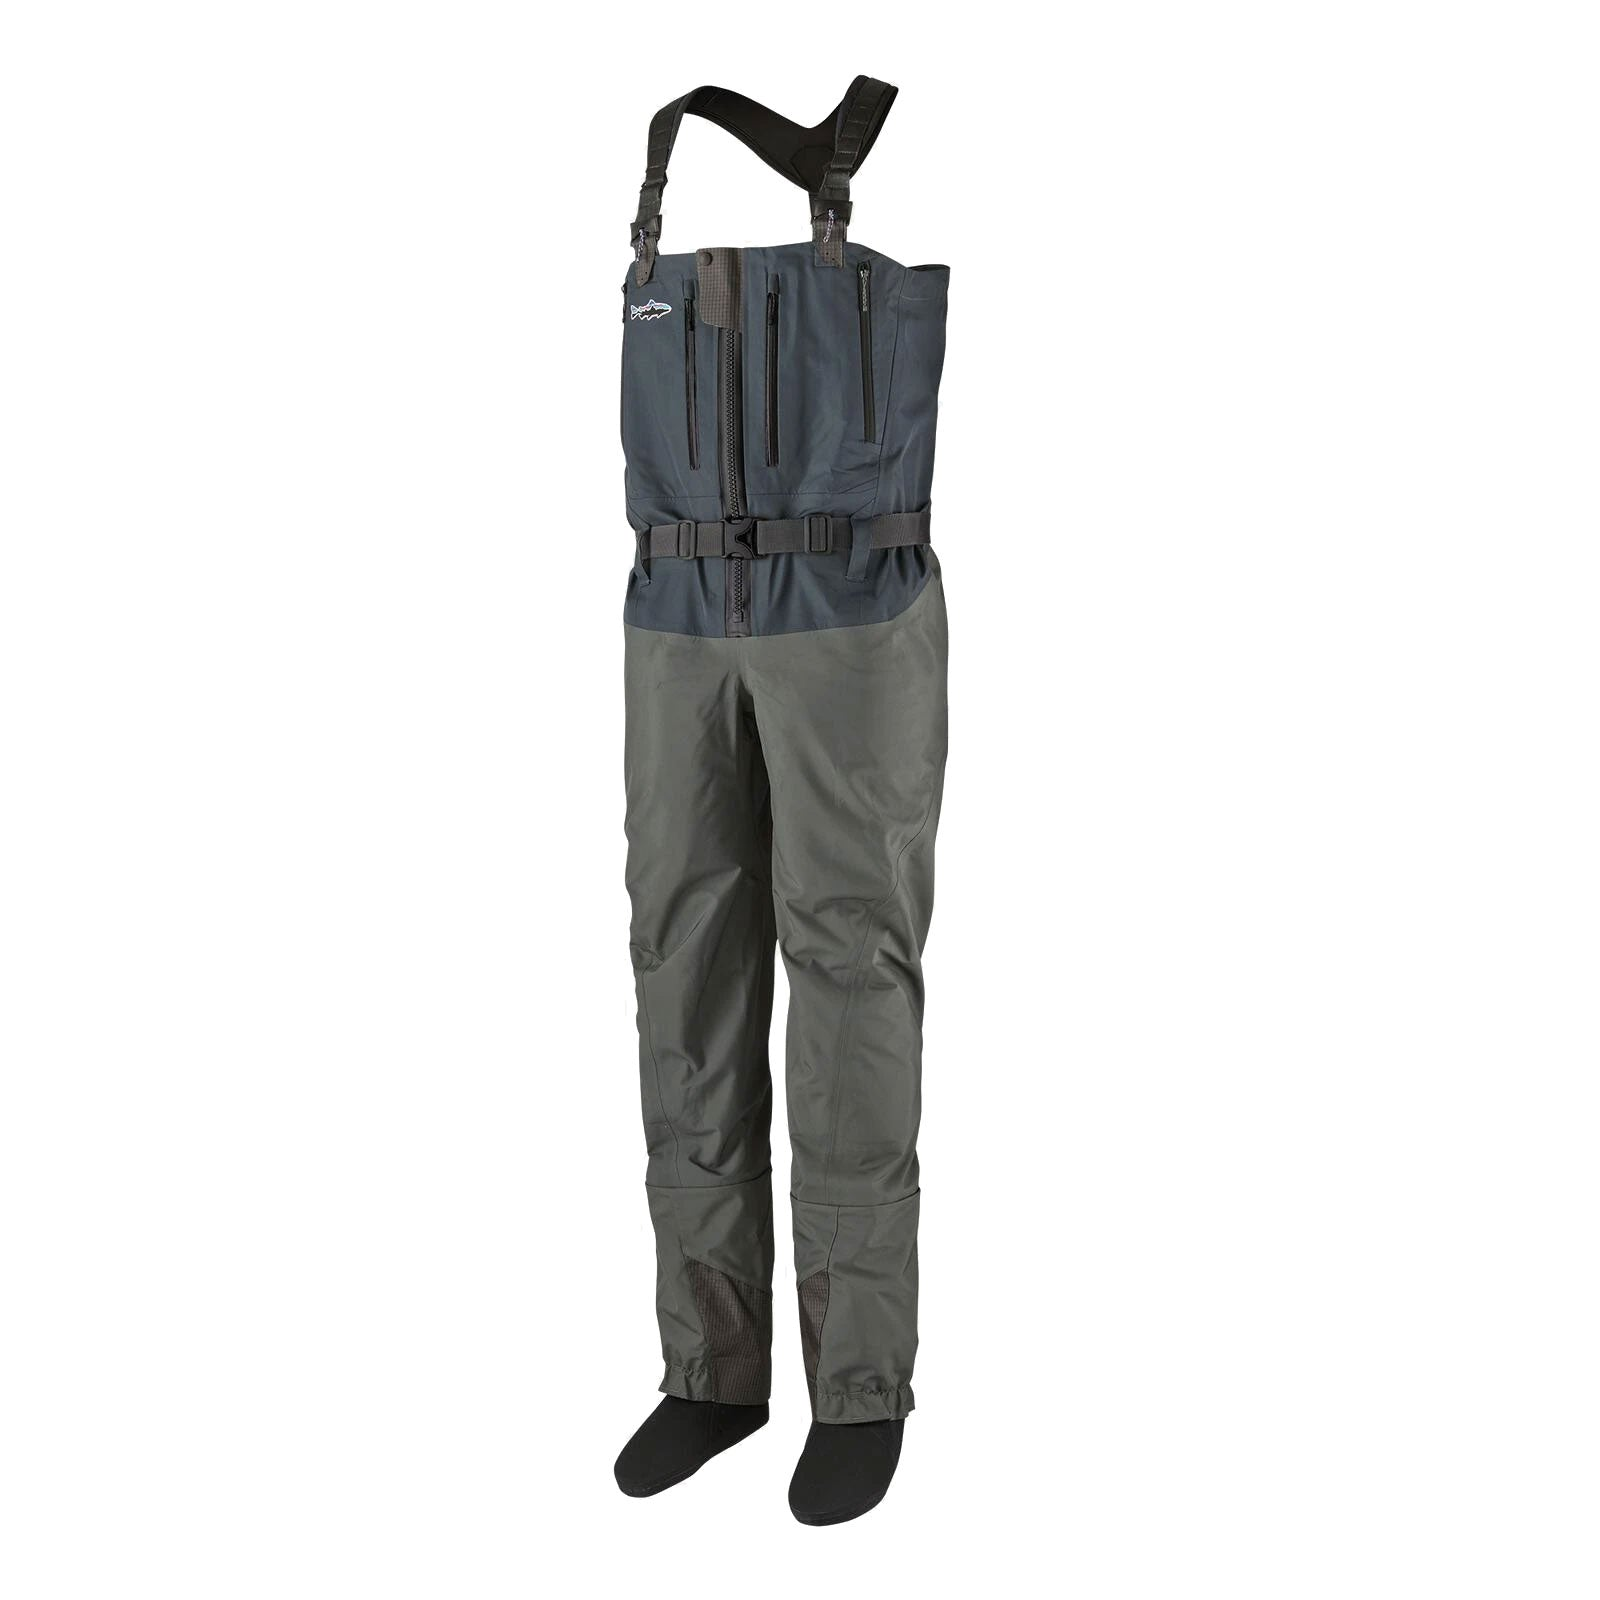 Patagonia Swiftcurrent Expedition Zip Waders